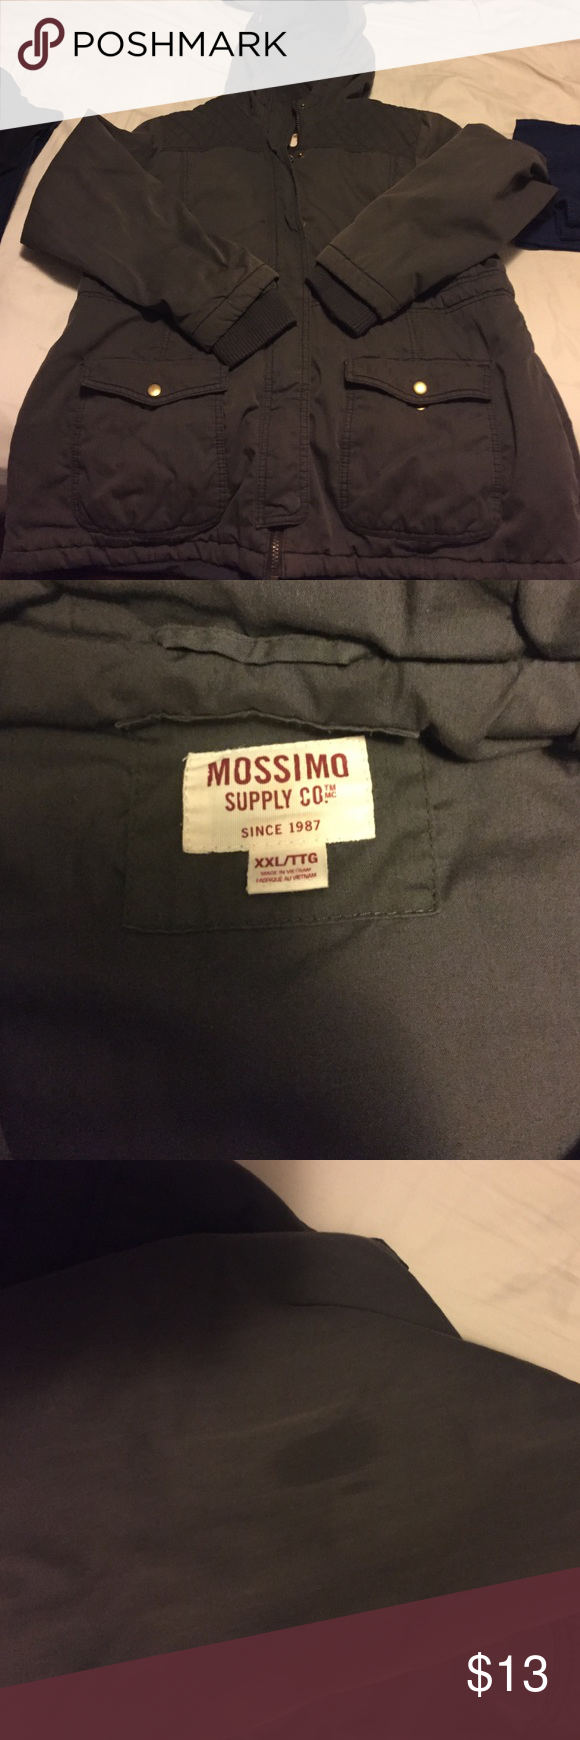 Mossimo grey winter coat Worn for 1 season. Has small stain on arm. I'm sure it can be removed but I just haven't tried to Mossimo Supply Co. Jackets & Coats